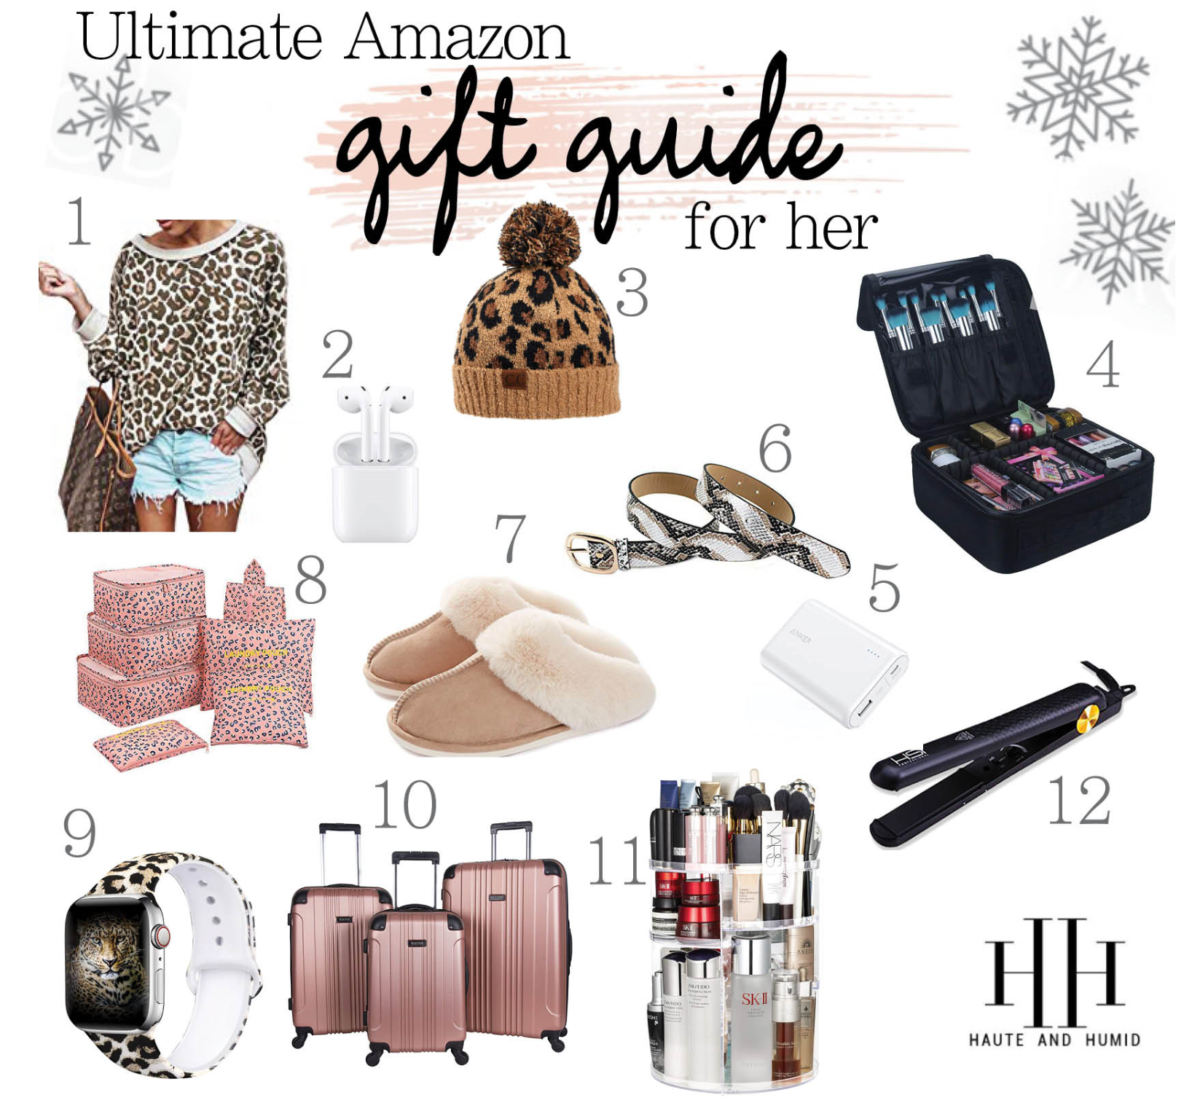 Holiday Gift Guide: 15 Amazon Gifts For Her She'll Love, a gift guide featured by top US Life and style blog, Haute and Humid, Haute and Humid: collage image of an Amazon Leopard print sweater, Amazon leopard print beanie, Amazon makeup case, Amazon slipper, Amazon hair straightener, Amazon luggage set, Amazon smart watch, Amazon beauty products, Amazon bet, and Amazon traveling compartments.